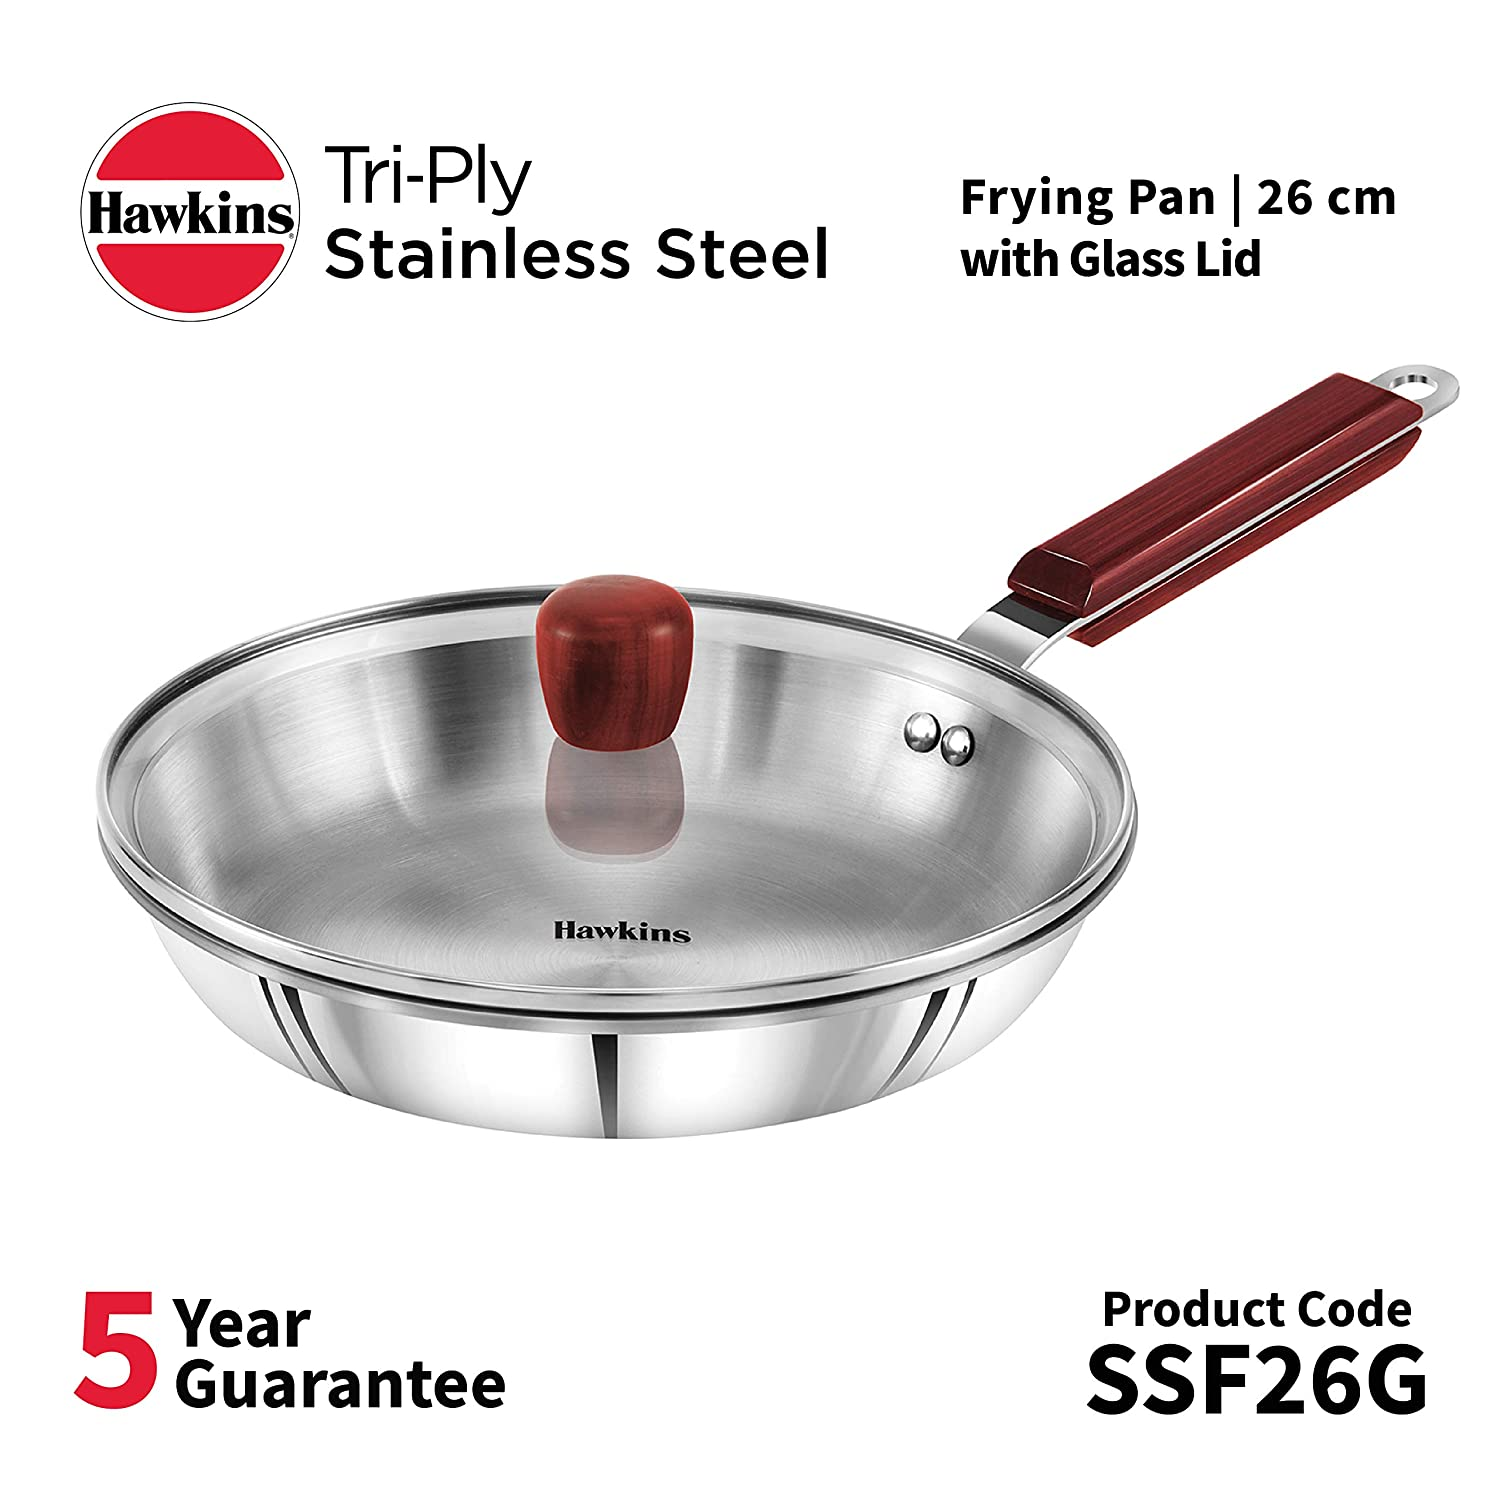 Hawkins Triple 3 mm Stainless Steel Frying Pan 26 cm with Lid